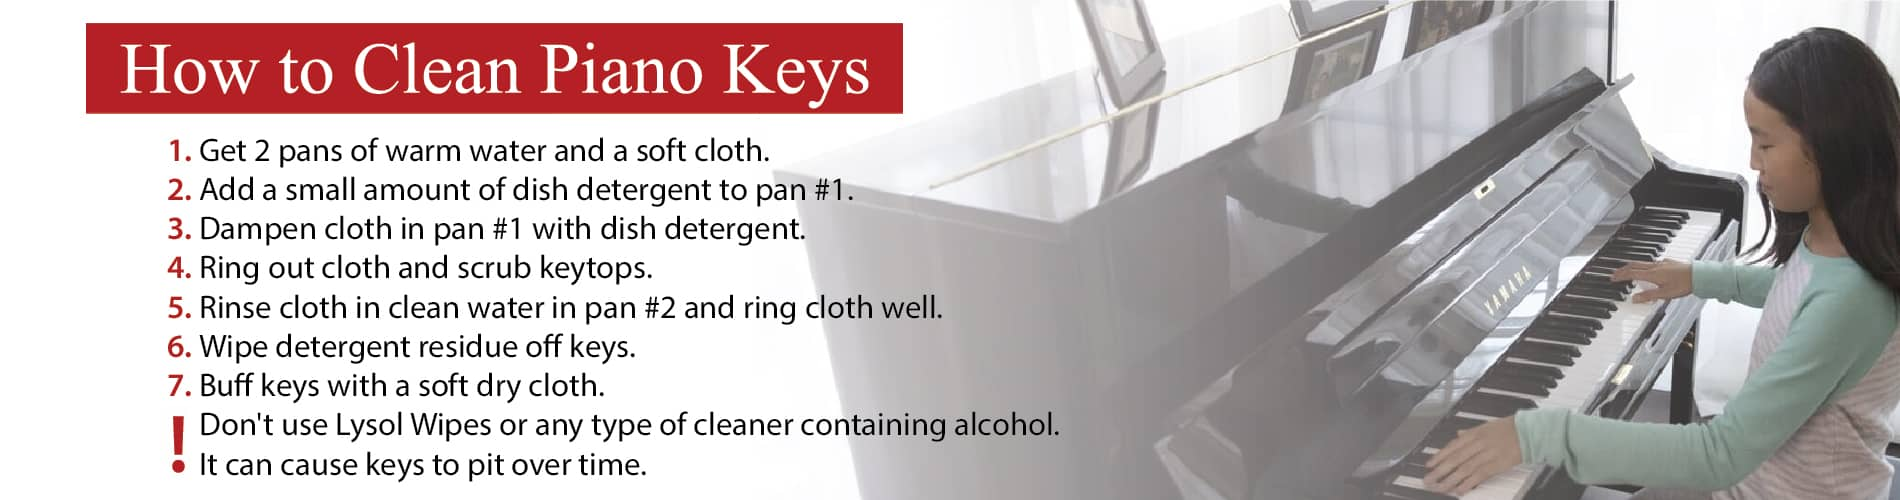 How to clean piano keys: Get 2 pans of warm water, a soft cloth and add a small amount of dish detergent to pan #1. Dampen cloth in pan #1 with dish detergent, ring out cloth and scrub keytops. Rinse cloth in clean water in pan #2, ring cloth well, wipe detergent residue off keys and buff keys with a soft dry cloth. * Don't use Lysol Wipes or any type of cleaner containing alcohol. It can cause keys to pit over time.